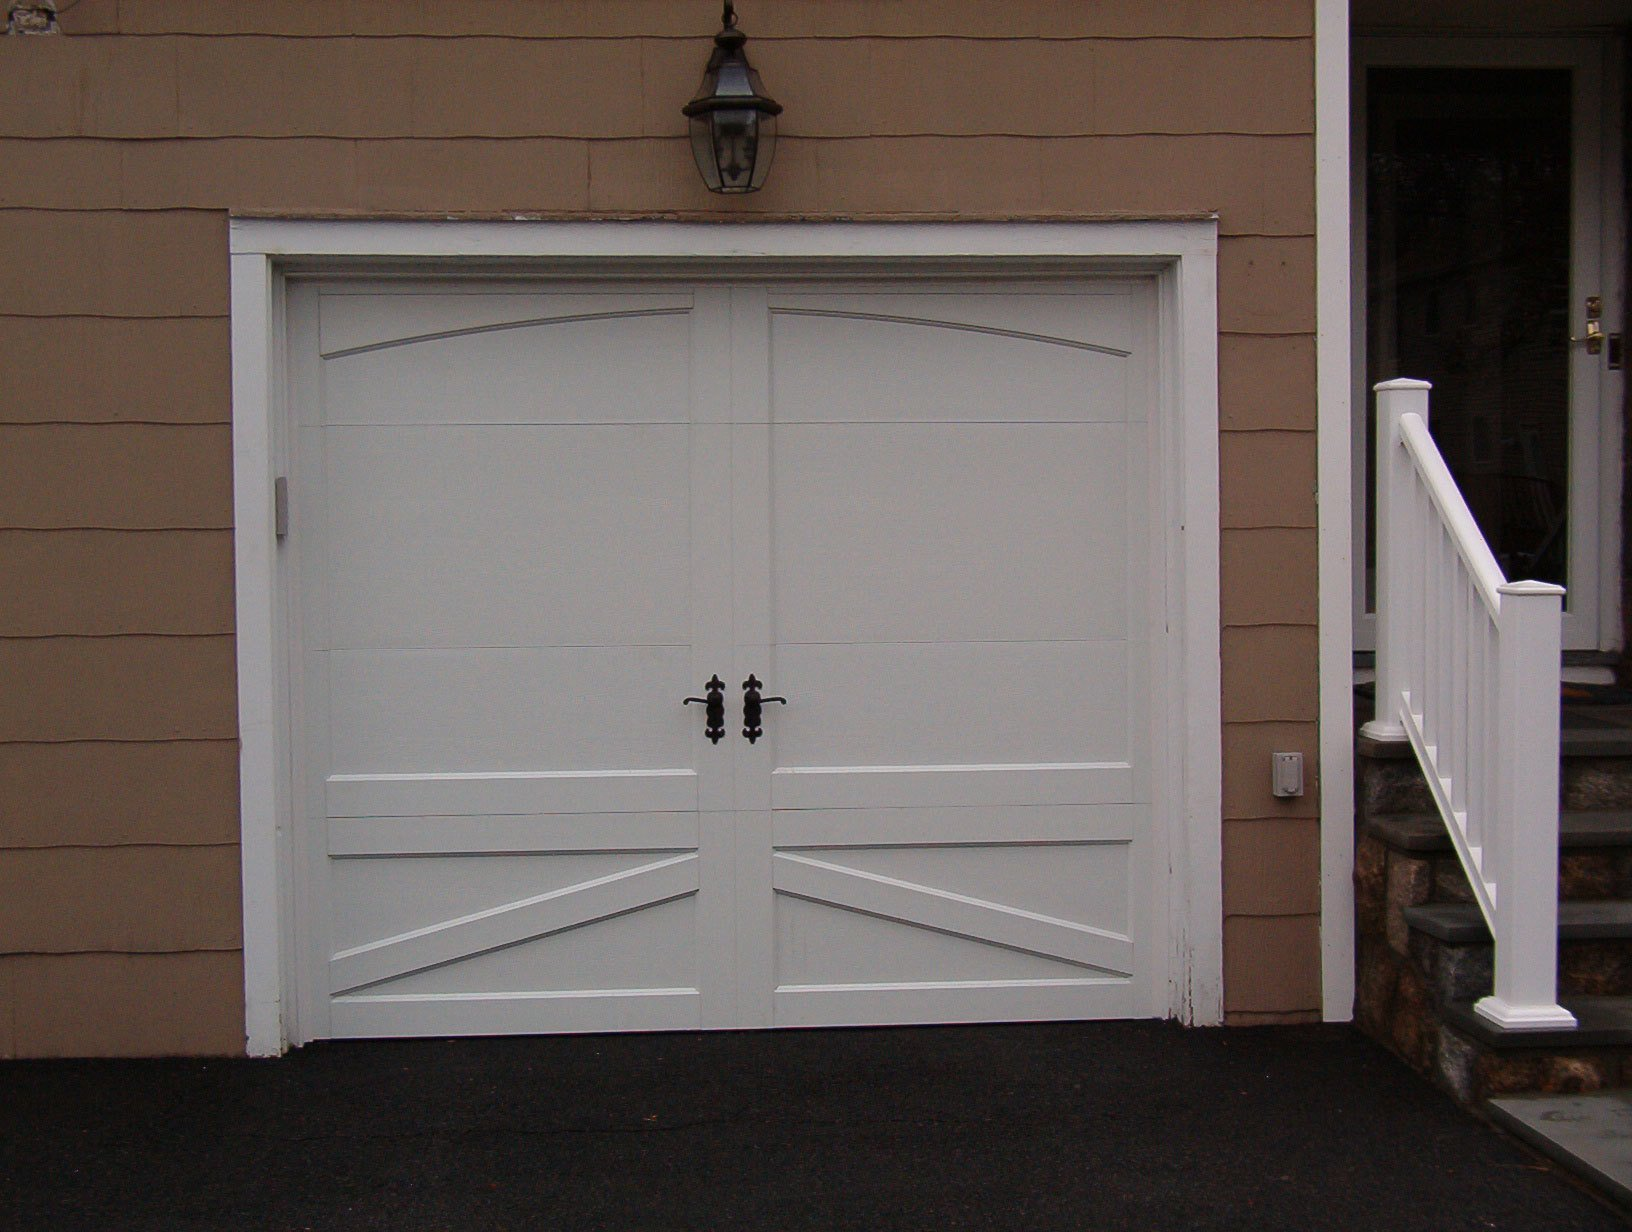 1232 #614B3D Clopay Coachman Garage Doors Coachman Steel Garage Door pic Coachman Garage Doors 38311632